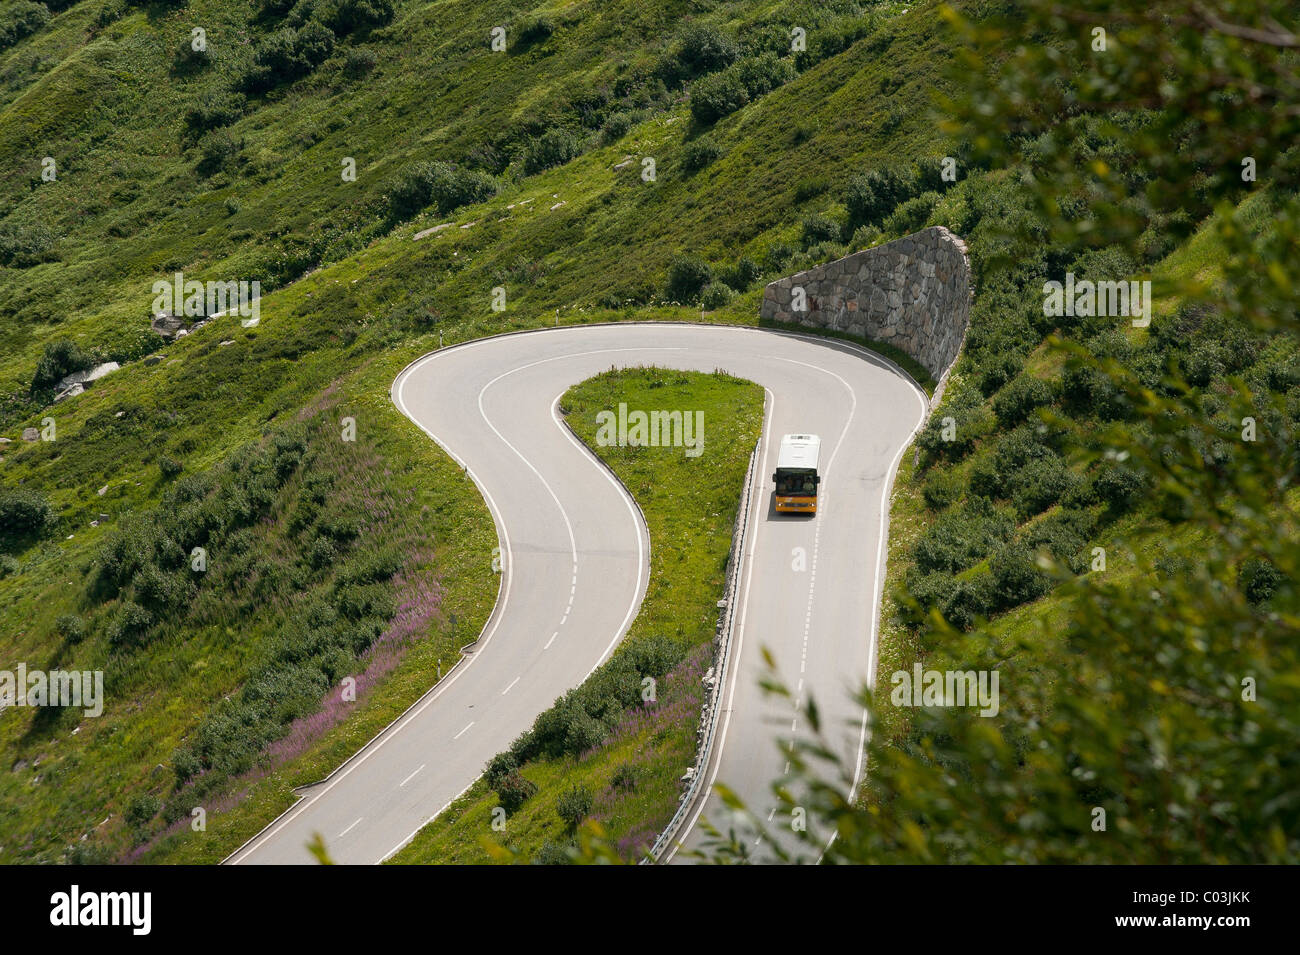 Furka Pass road and a mail bus, canton of Valais, Switzerland, Europe - Stock Image